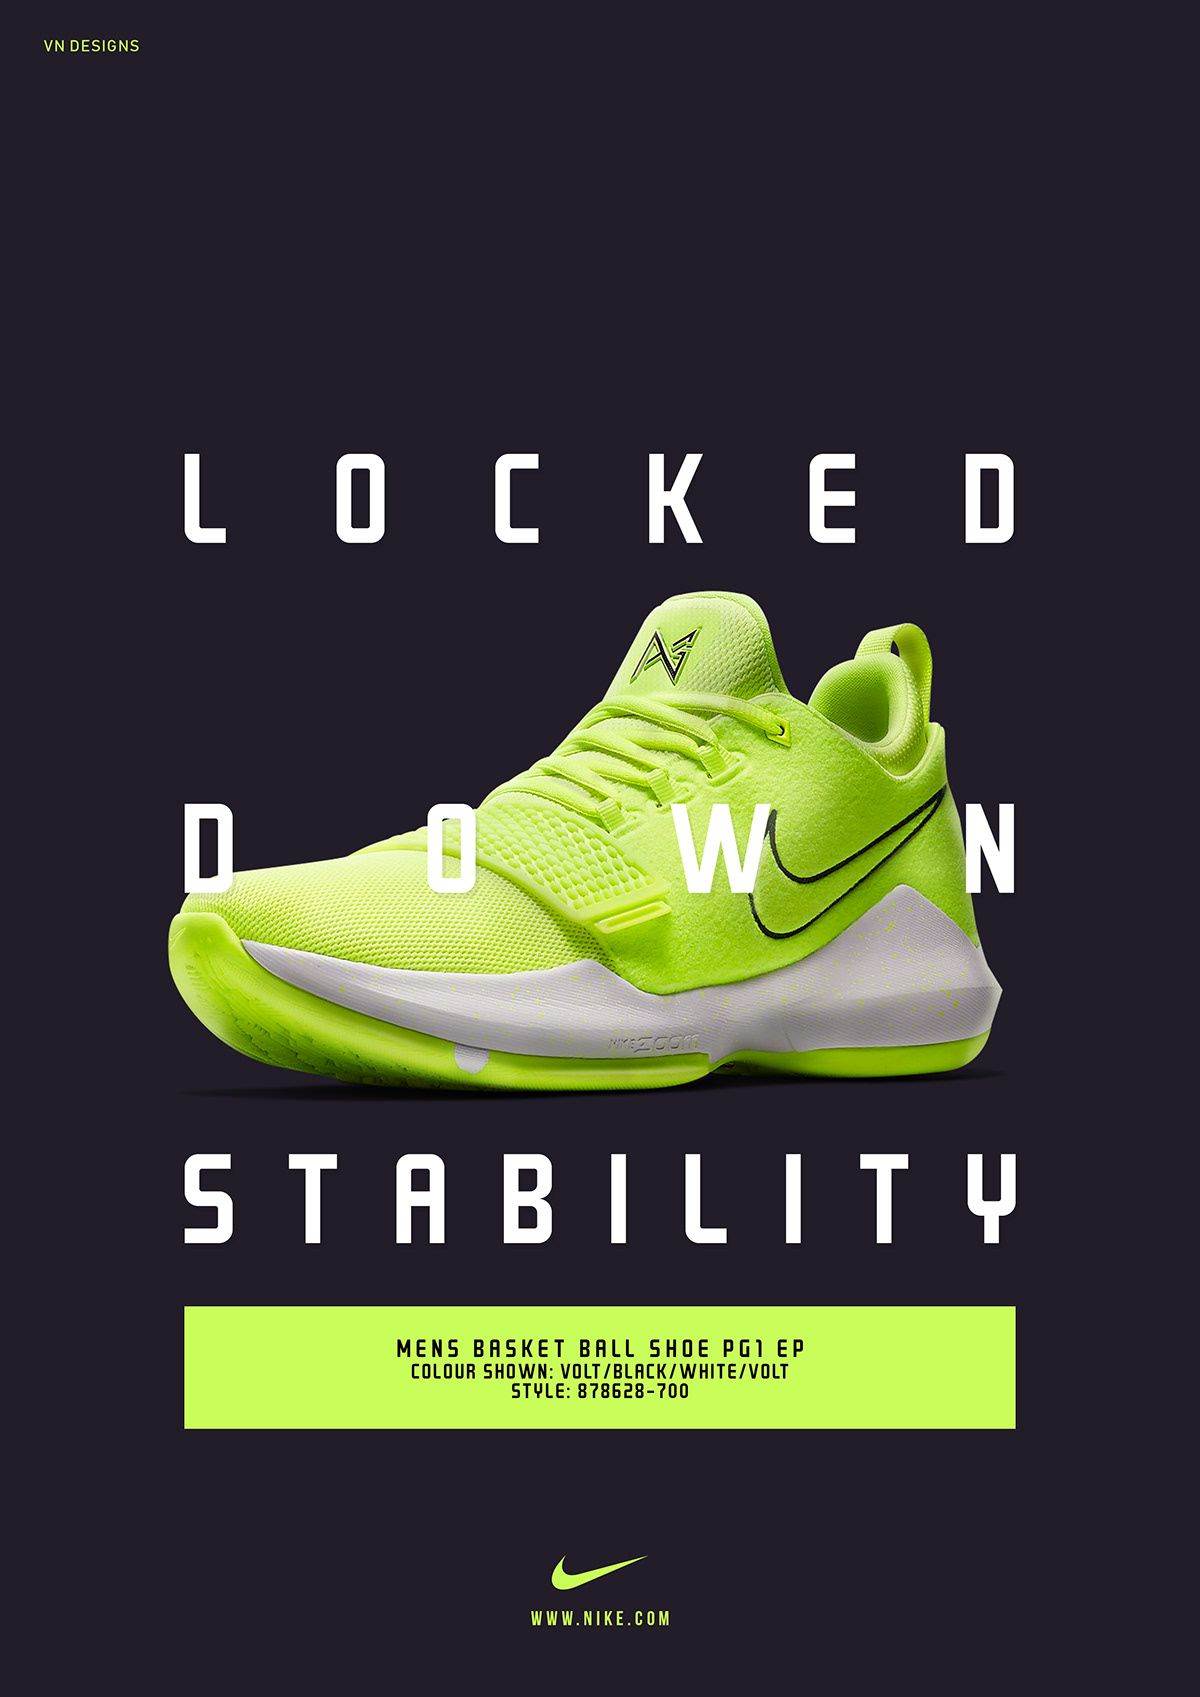 Nike Unofficial Product Poster Ad. on Behance | Sneaker ...